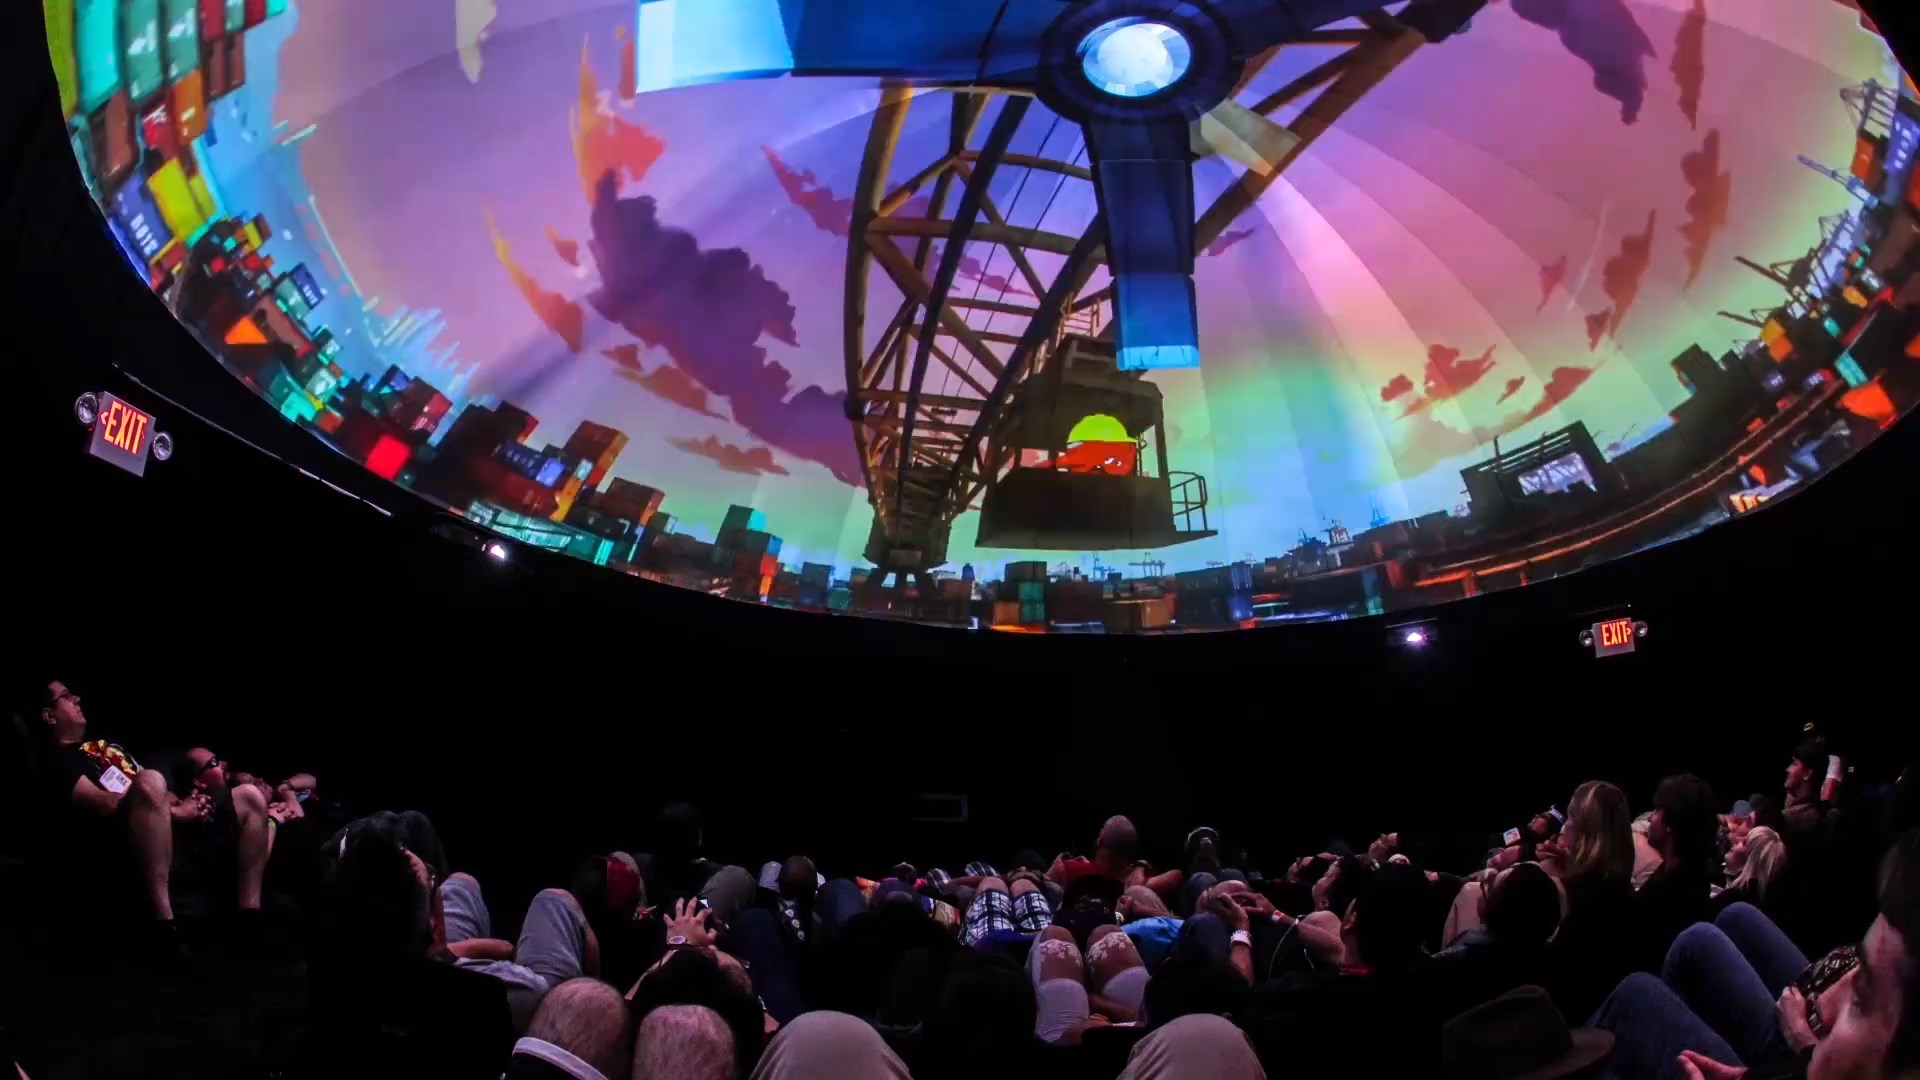 Projection Dome Theater by Pacific Domes at Comic-Con